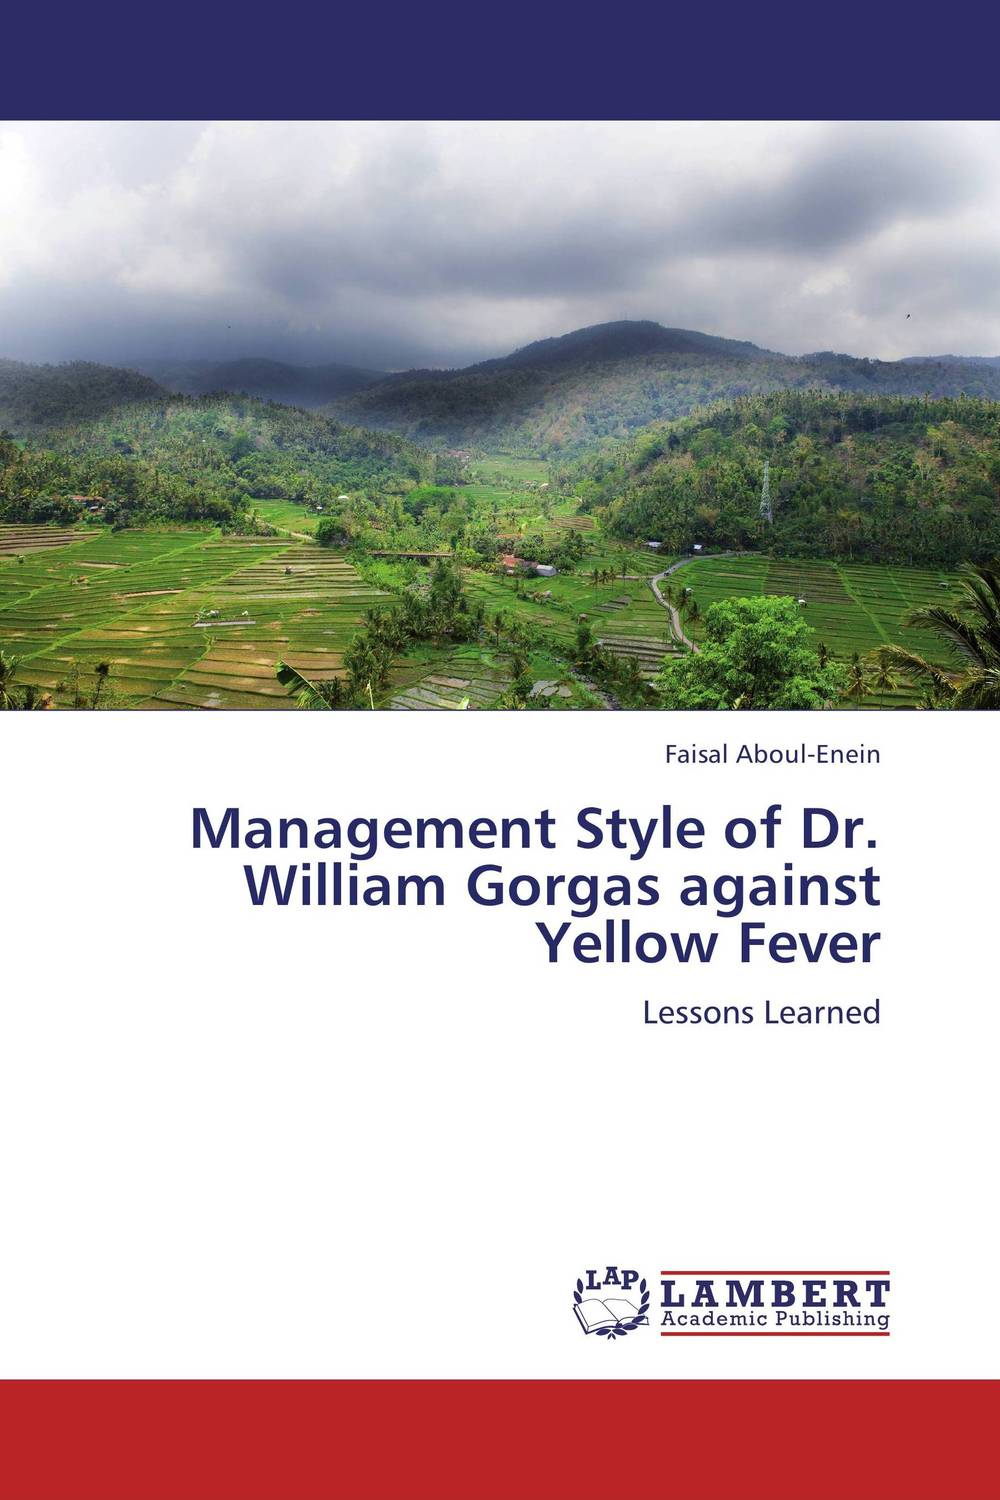 Management Style of Dr. William Gorgas against Yellow Fever dr irrenpreet singh sanghotra dr prem kumar and dr paramjeet kaur dhindsa quality management practices and organisational performance